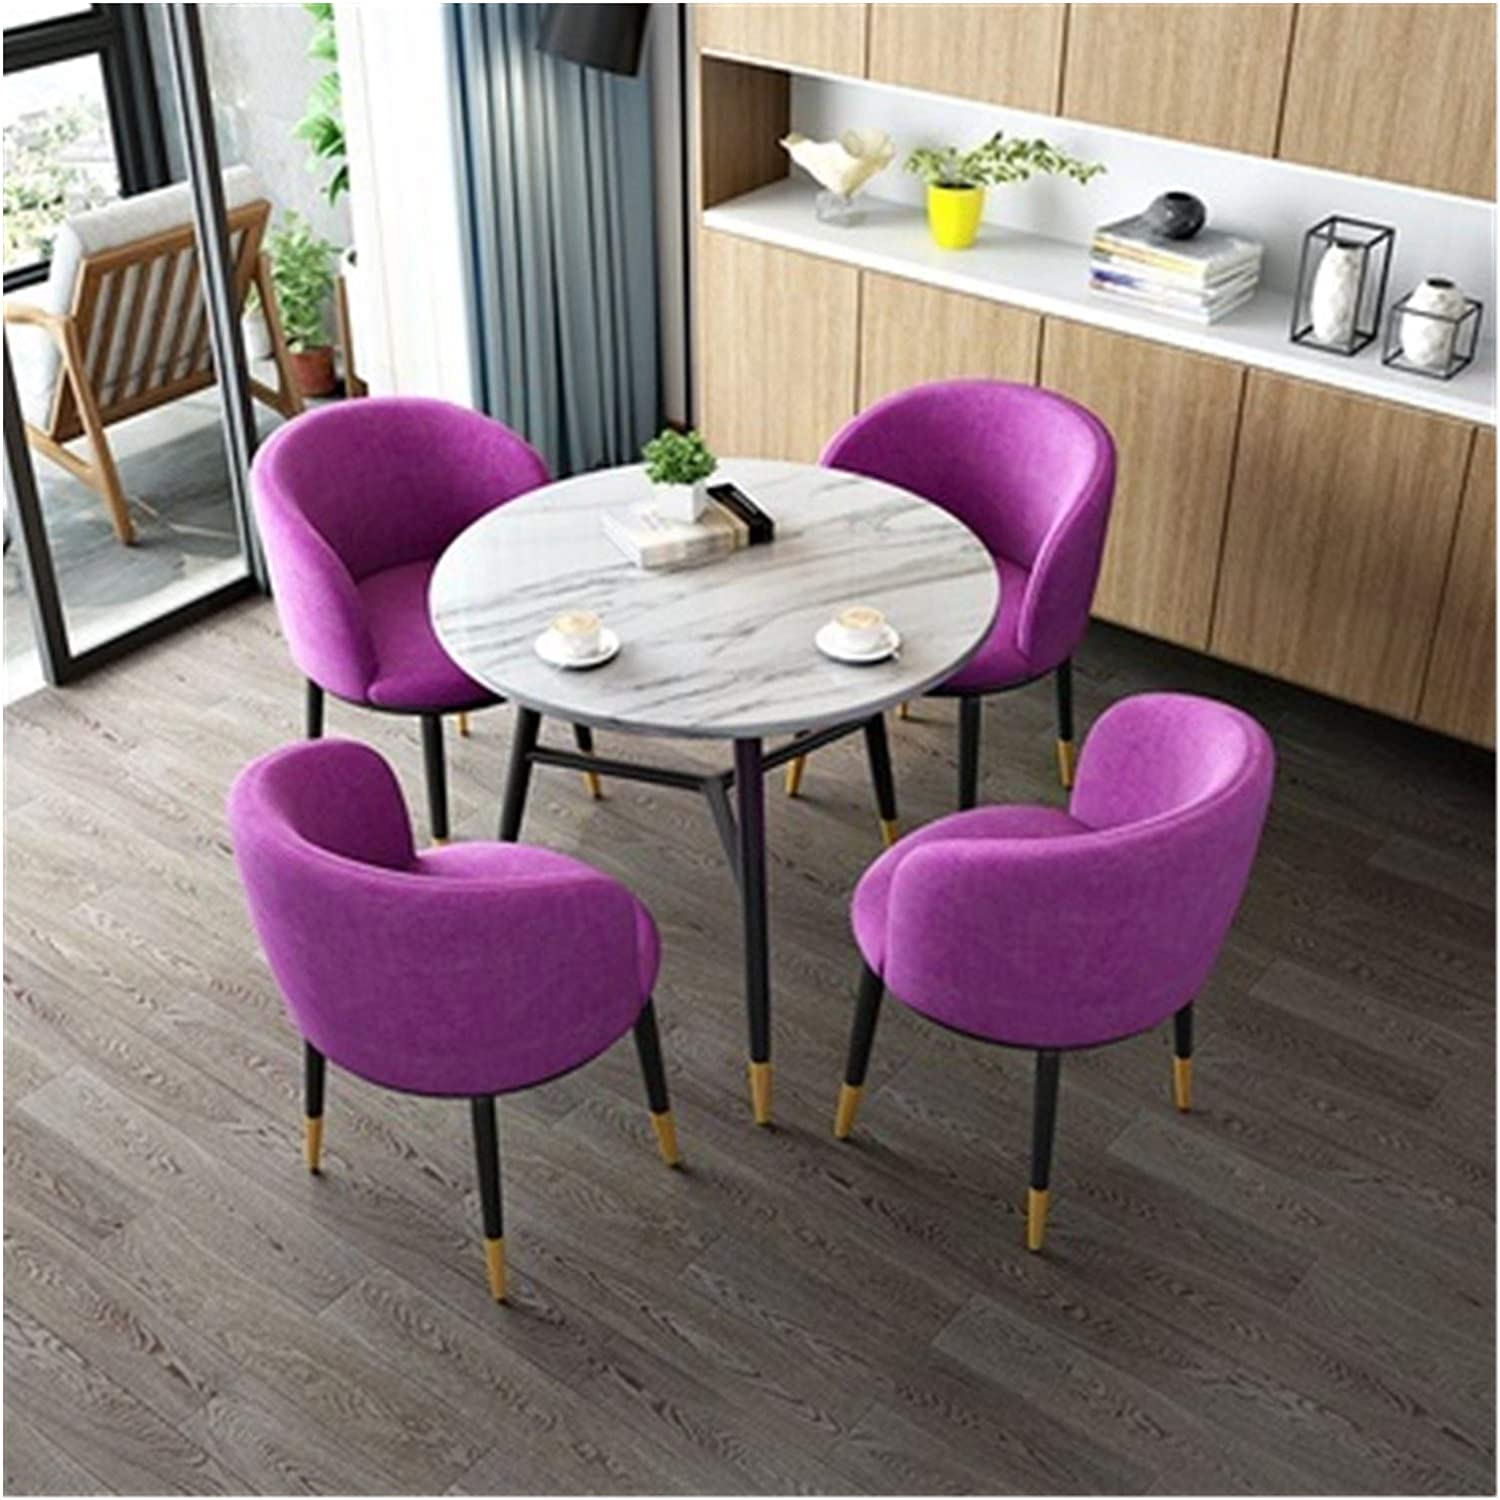 Office Reception table Chair Set Fresno Mall Combina Table Leisure Ranking TOP15 and